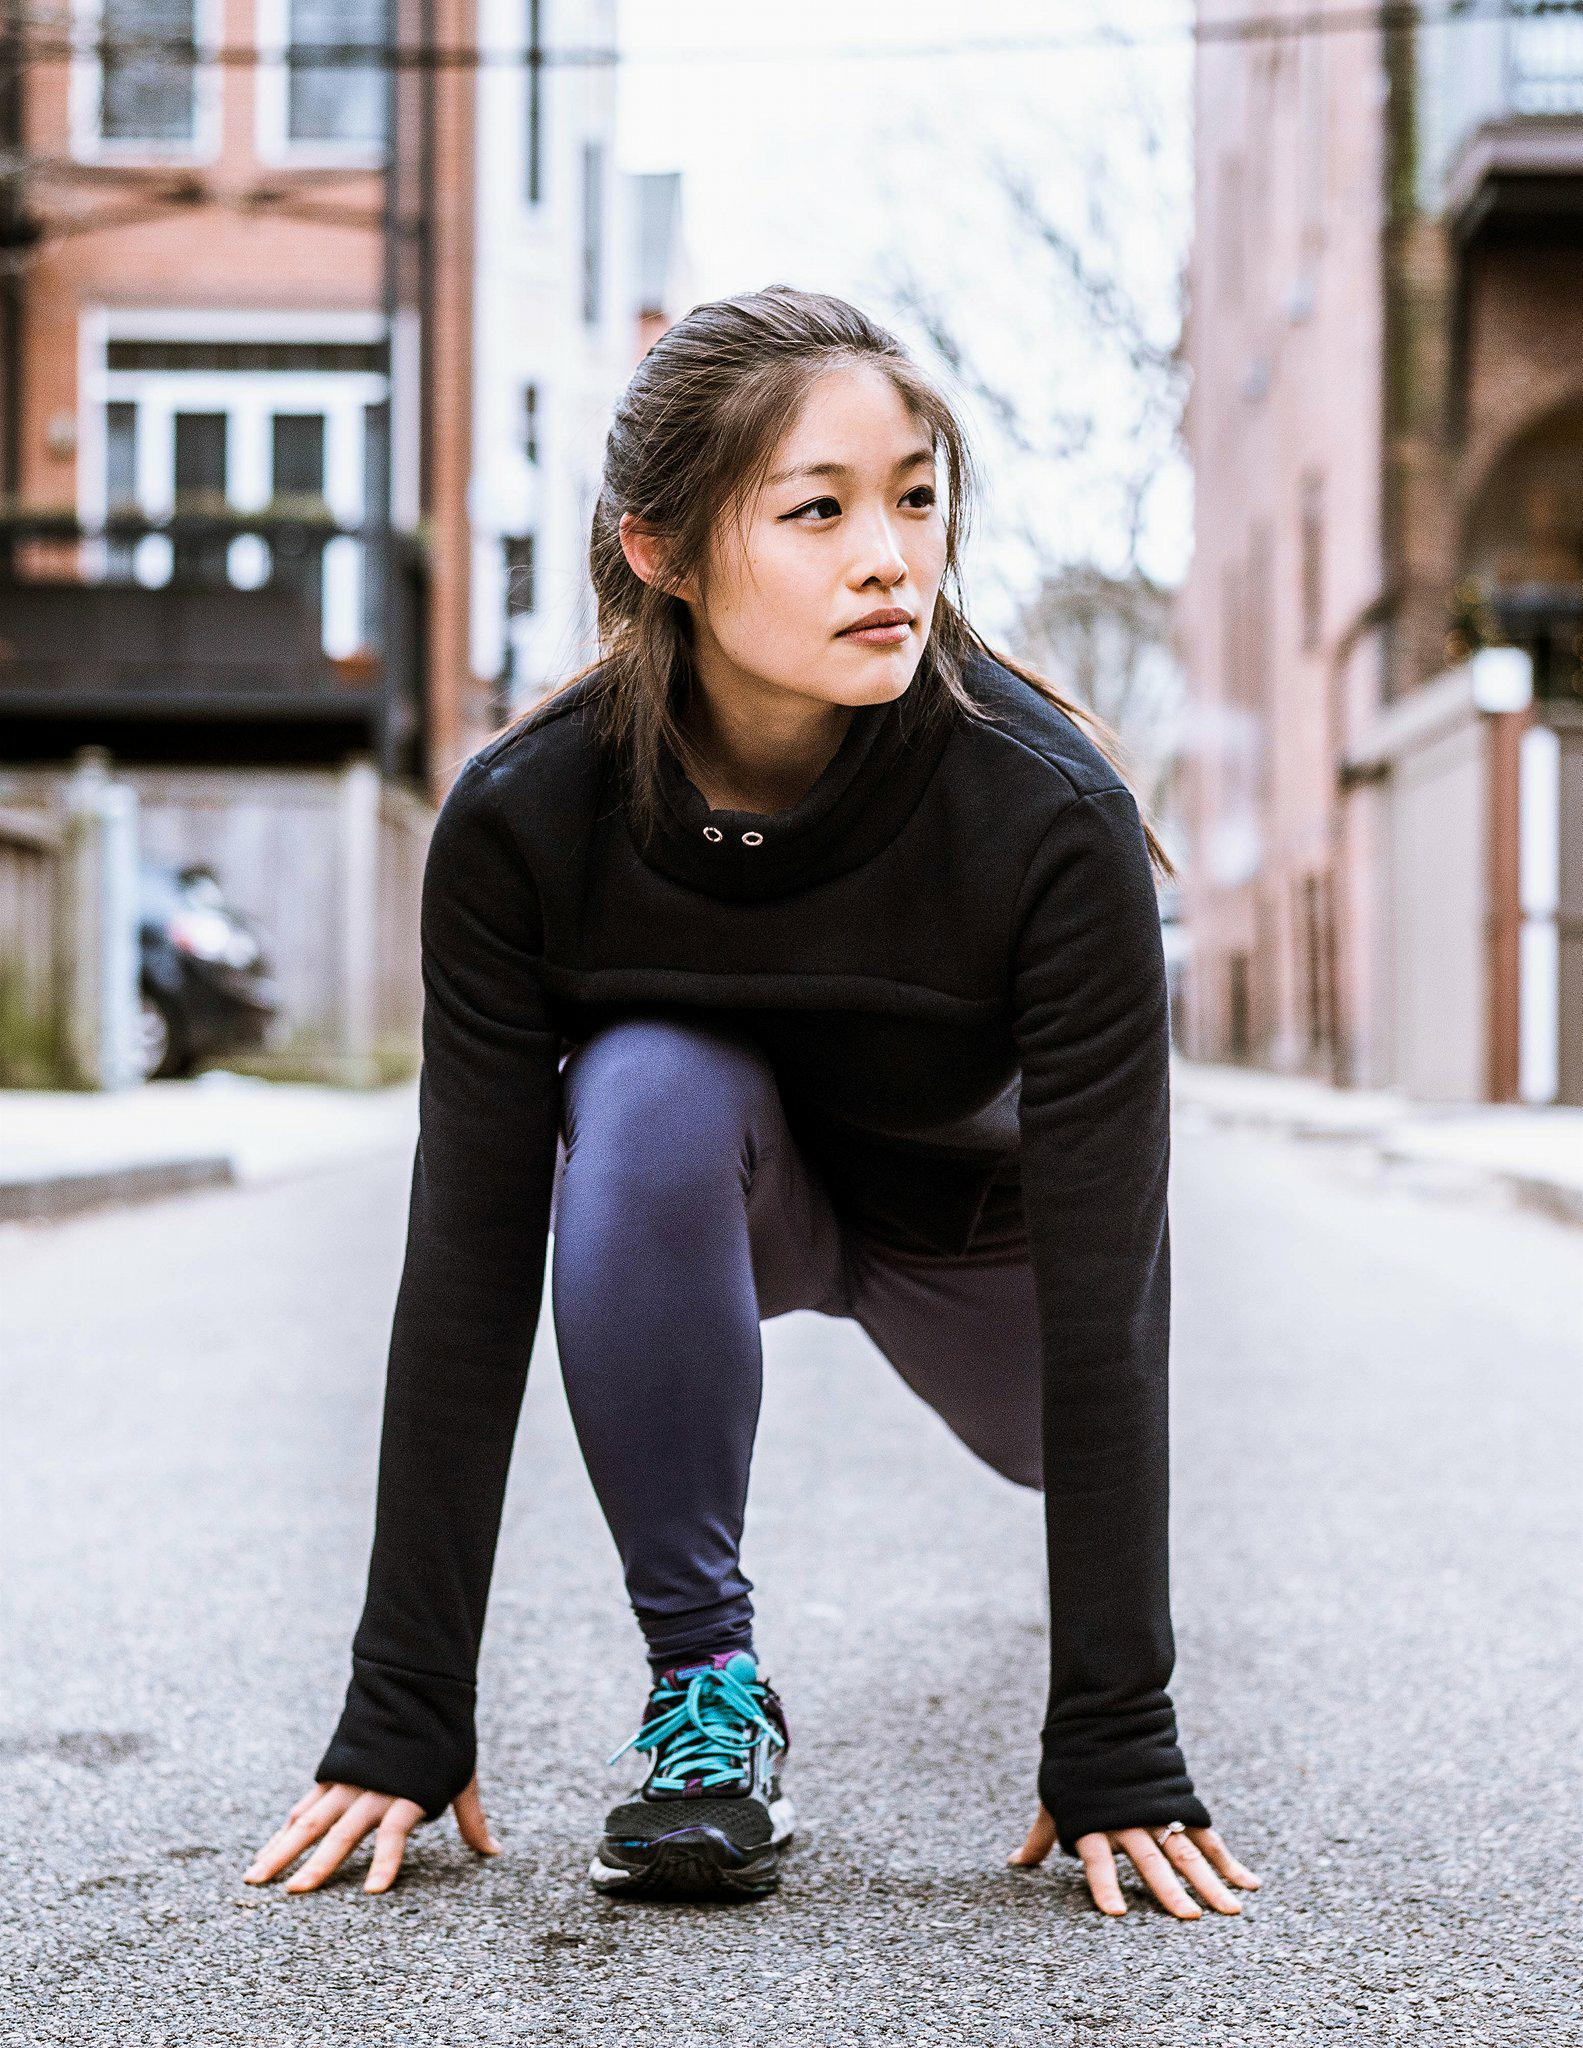 How to Dress for Winter Running - by Christie Wang